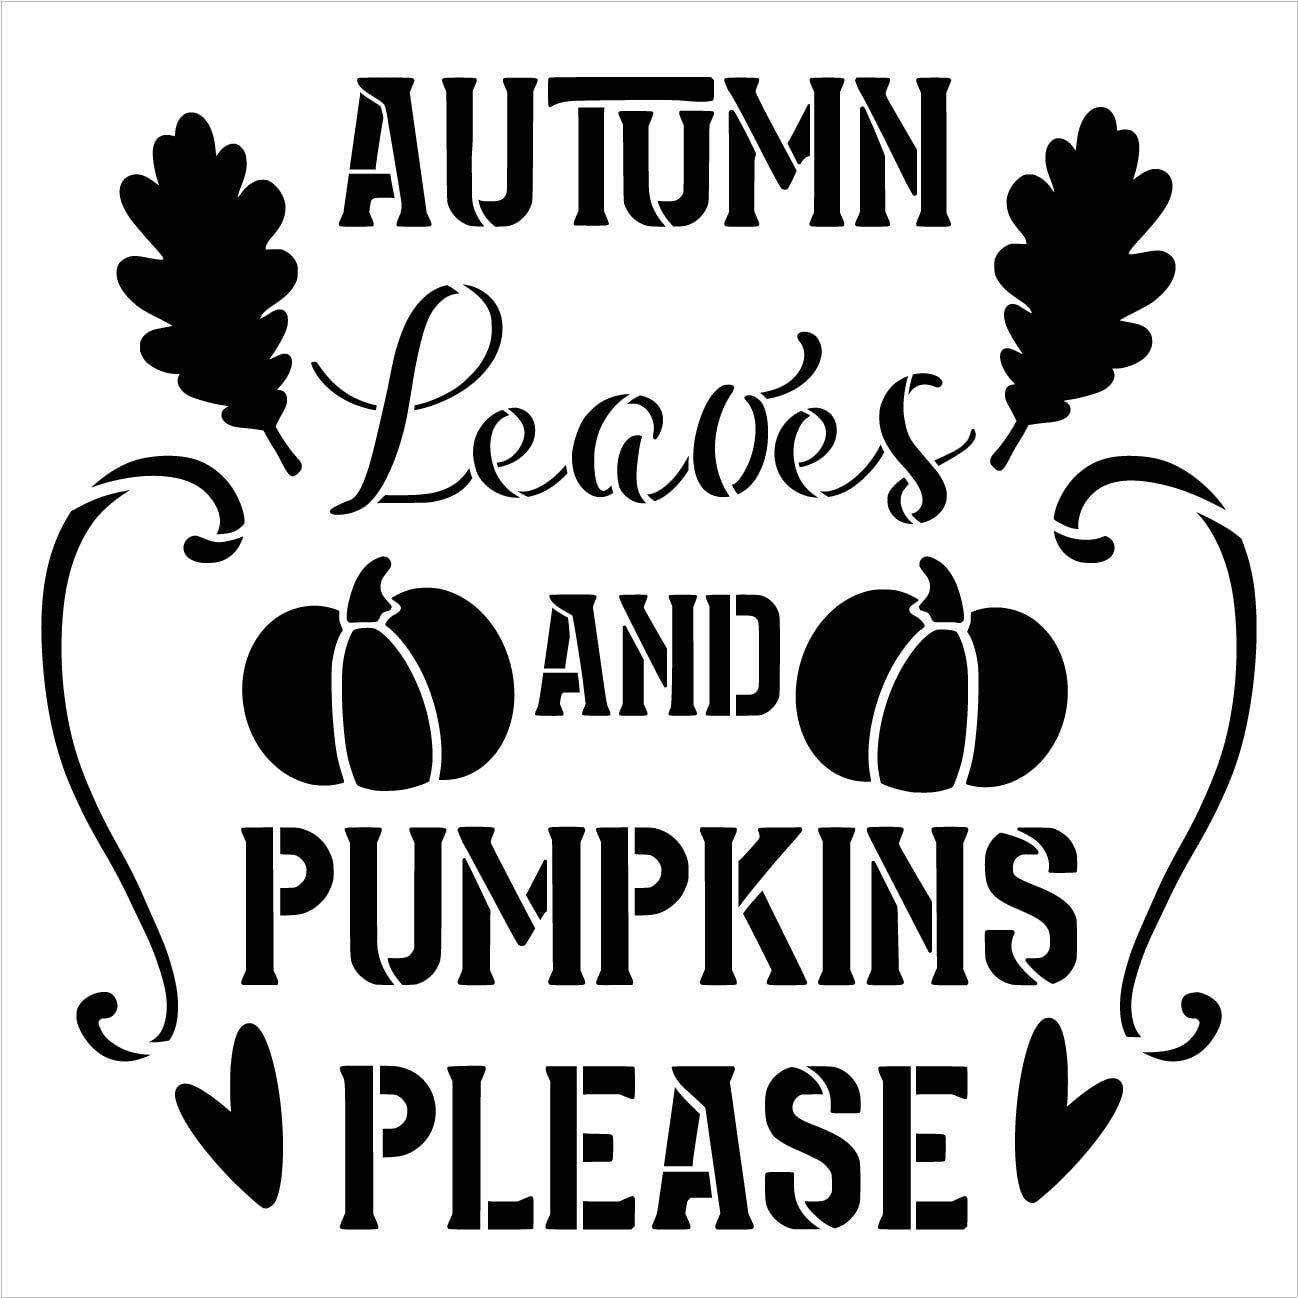 Autumn Leaves and Pumpkins Please Stencil by StudioR12 | DIY Fall Pumpkin Home Decor | Craft & Paint Wood Sign | Reusable Mylar Template | Country Cursive Script | Select Size